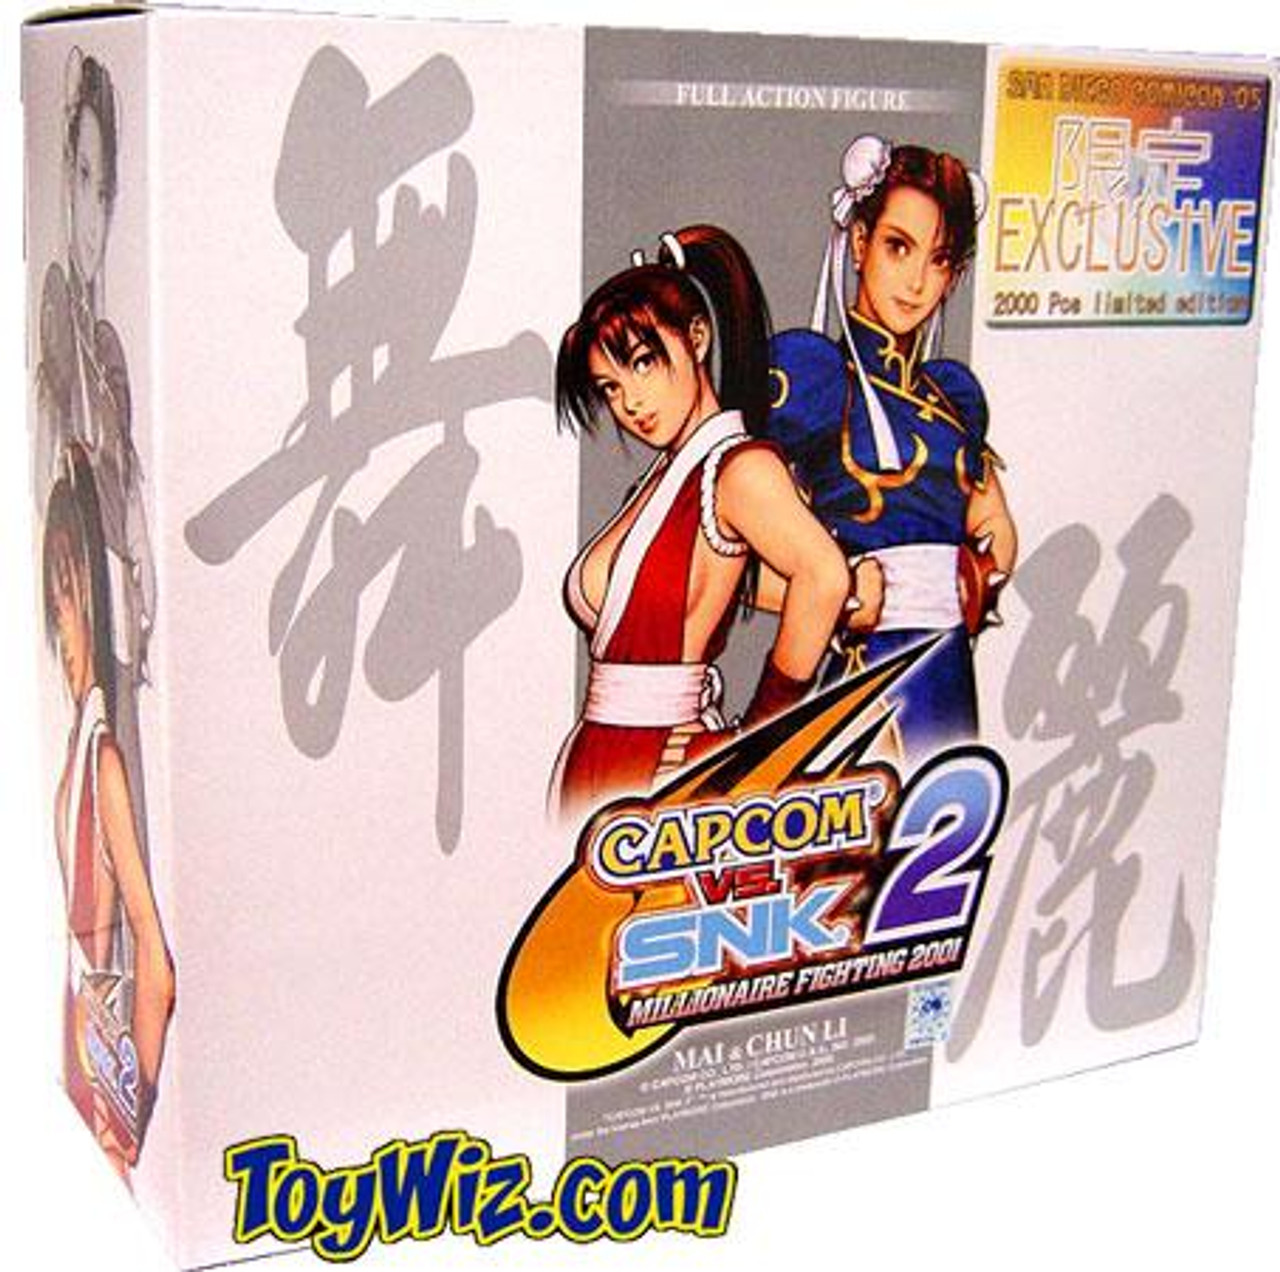 Capcom vs. SNK 2 Mai & Chun Li Action Figure 2-Pack [Repaint]